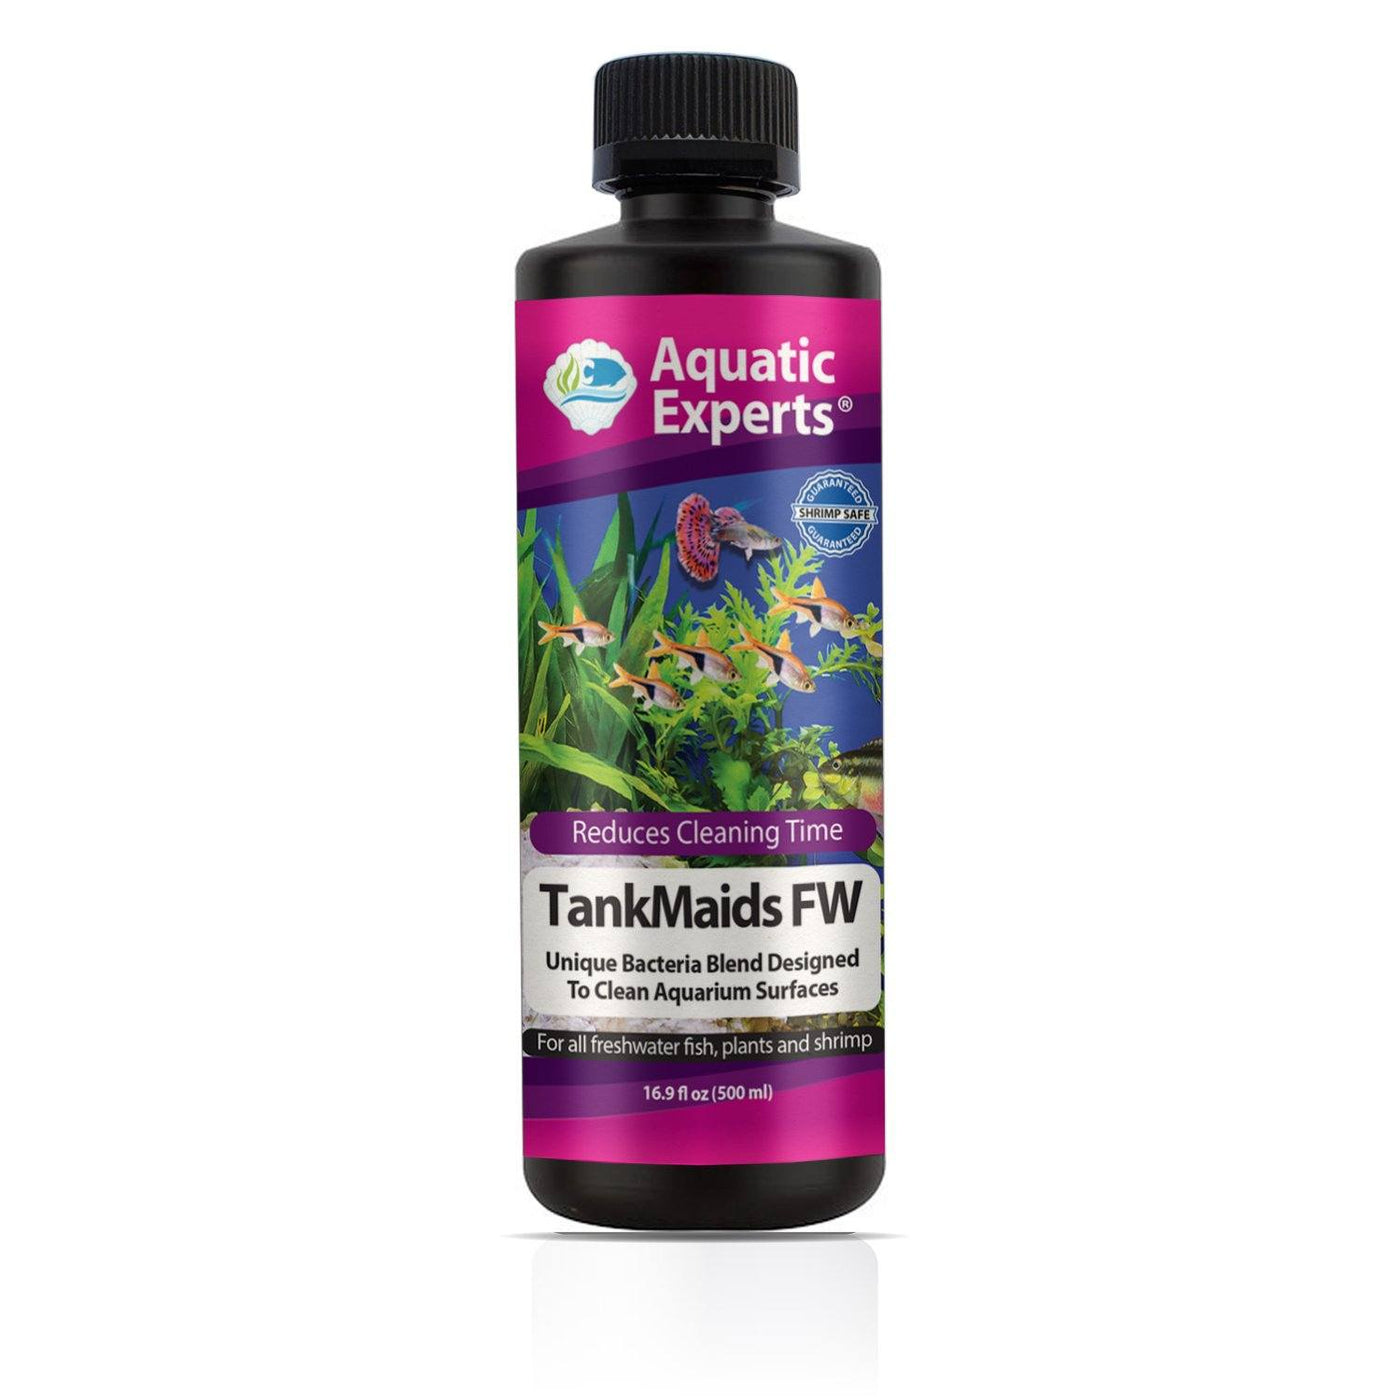 TankMaids FW Aquarium Biological Surface Cleaner - Unique Bacteria Designed for Cycling Freshwater Aquaria - Aquatic Experts